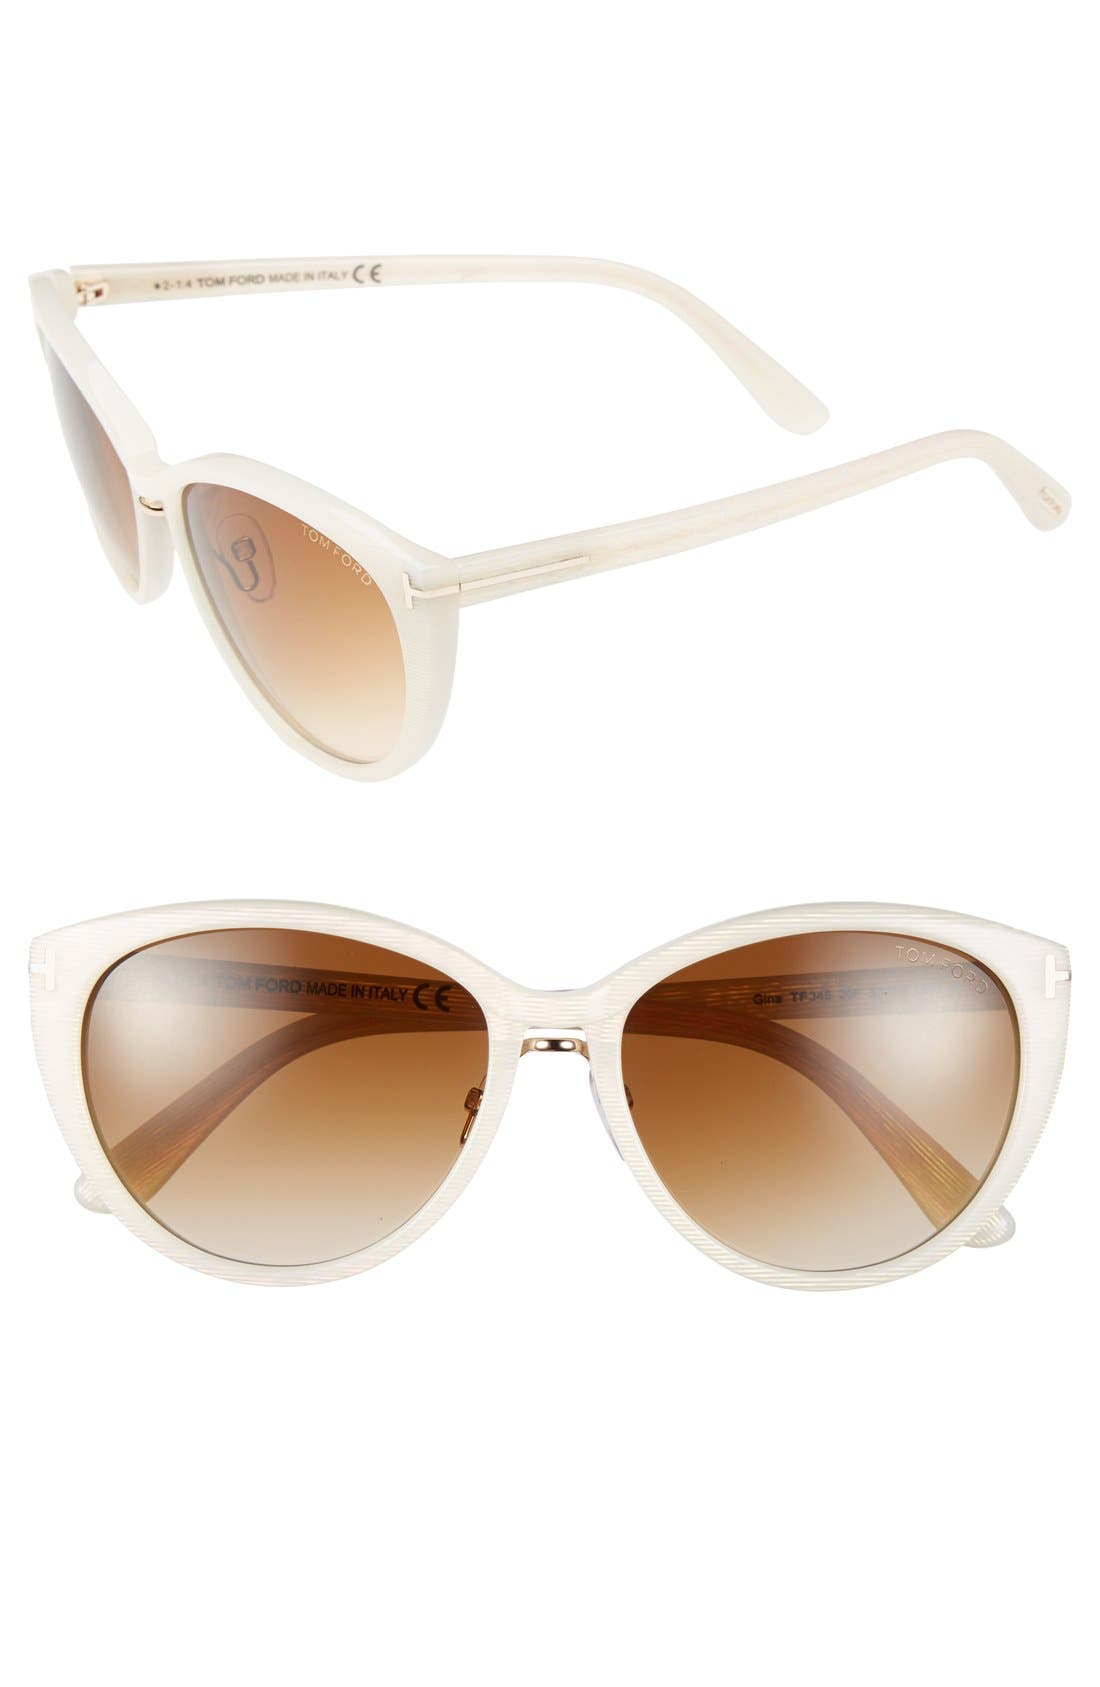 Main Image - Tom Ford 'Gina' 57mm Cat Eye Sunglasses